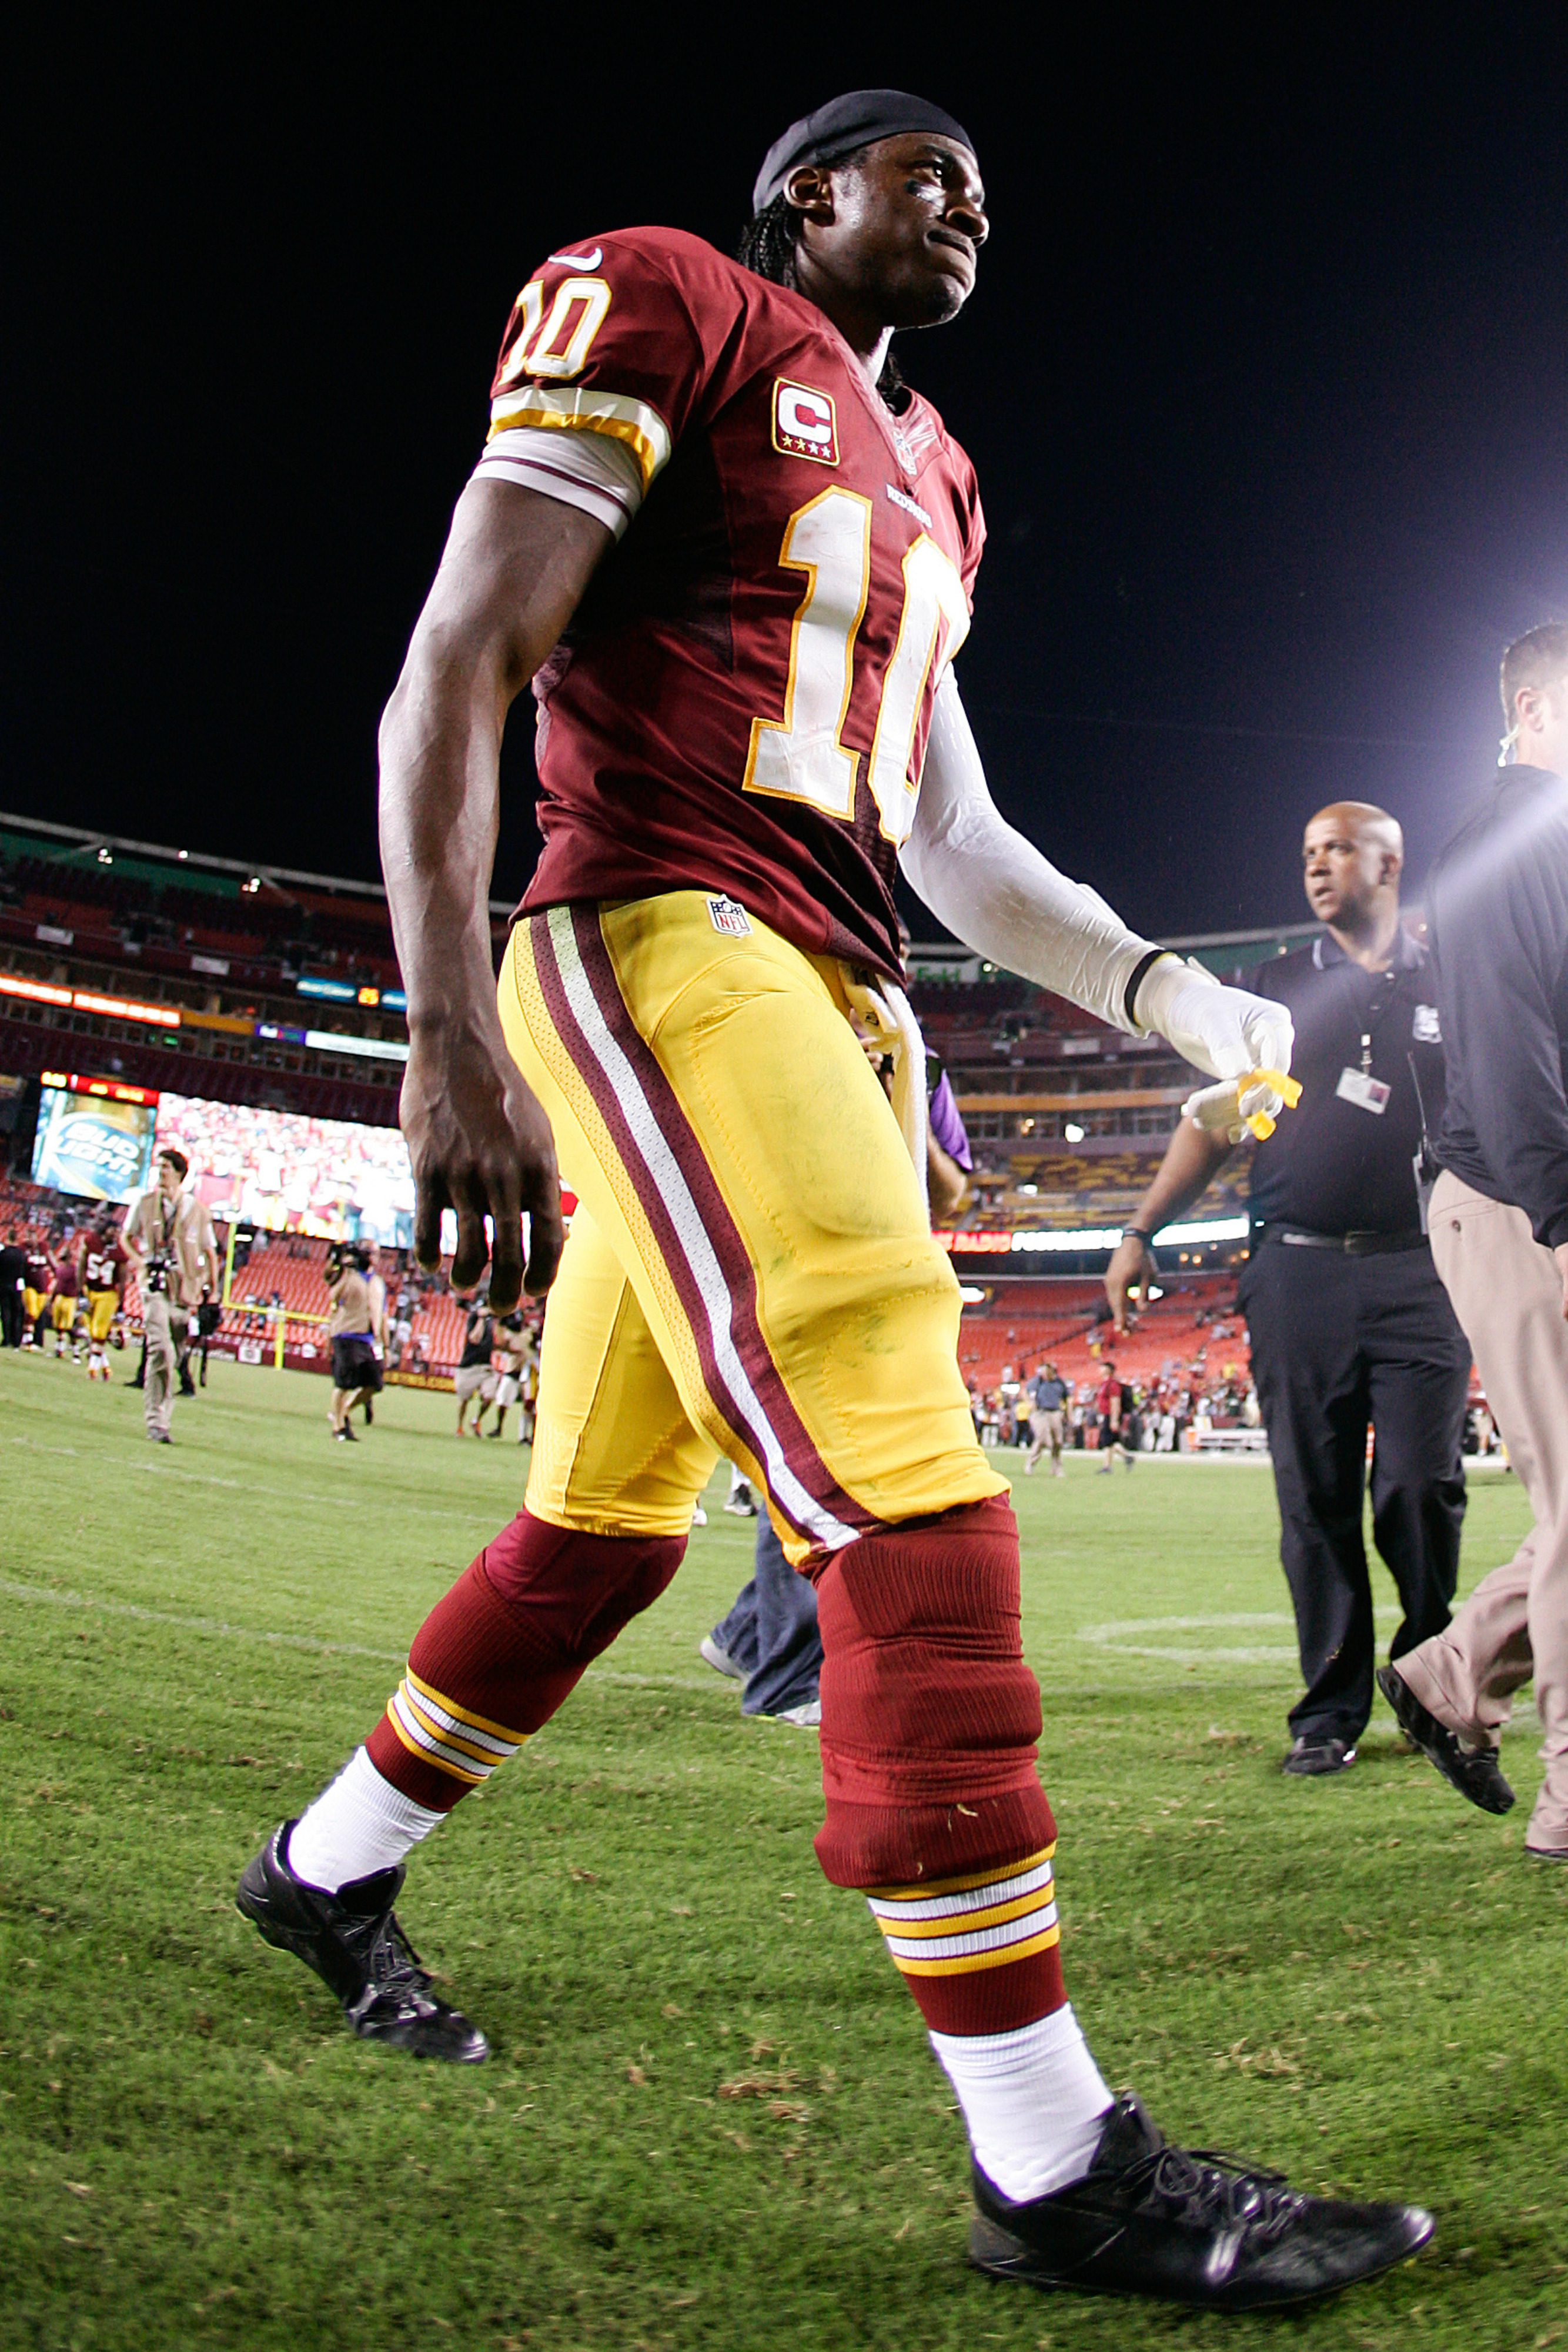 NFL made Robert Griffin III cover knee brace in Redskins loss